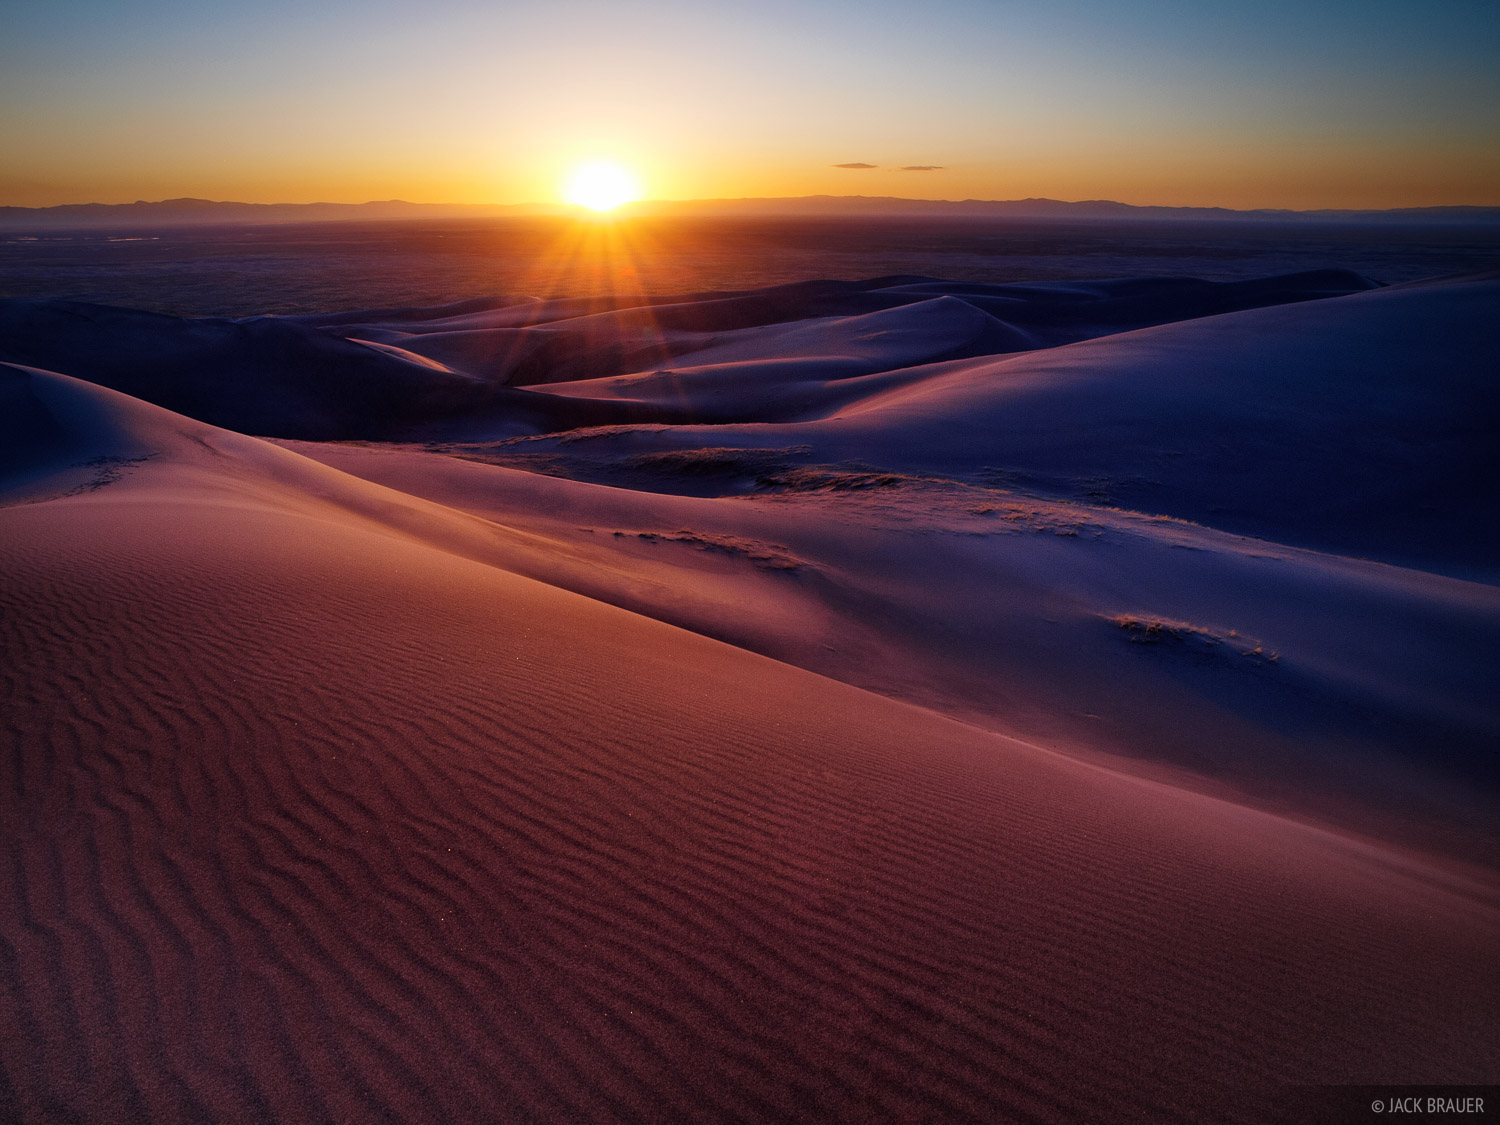 Sunset over the San Luis Valley, as seen from in the dunes.